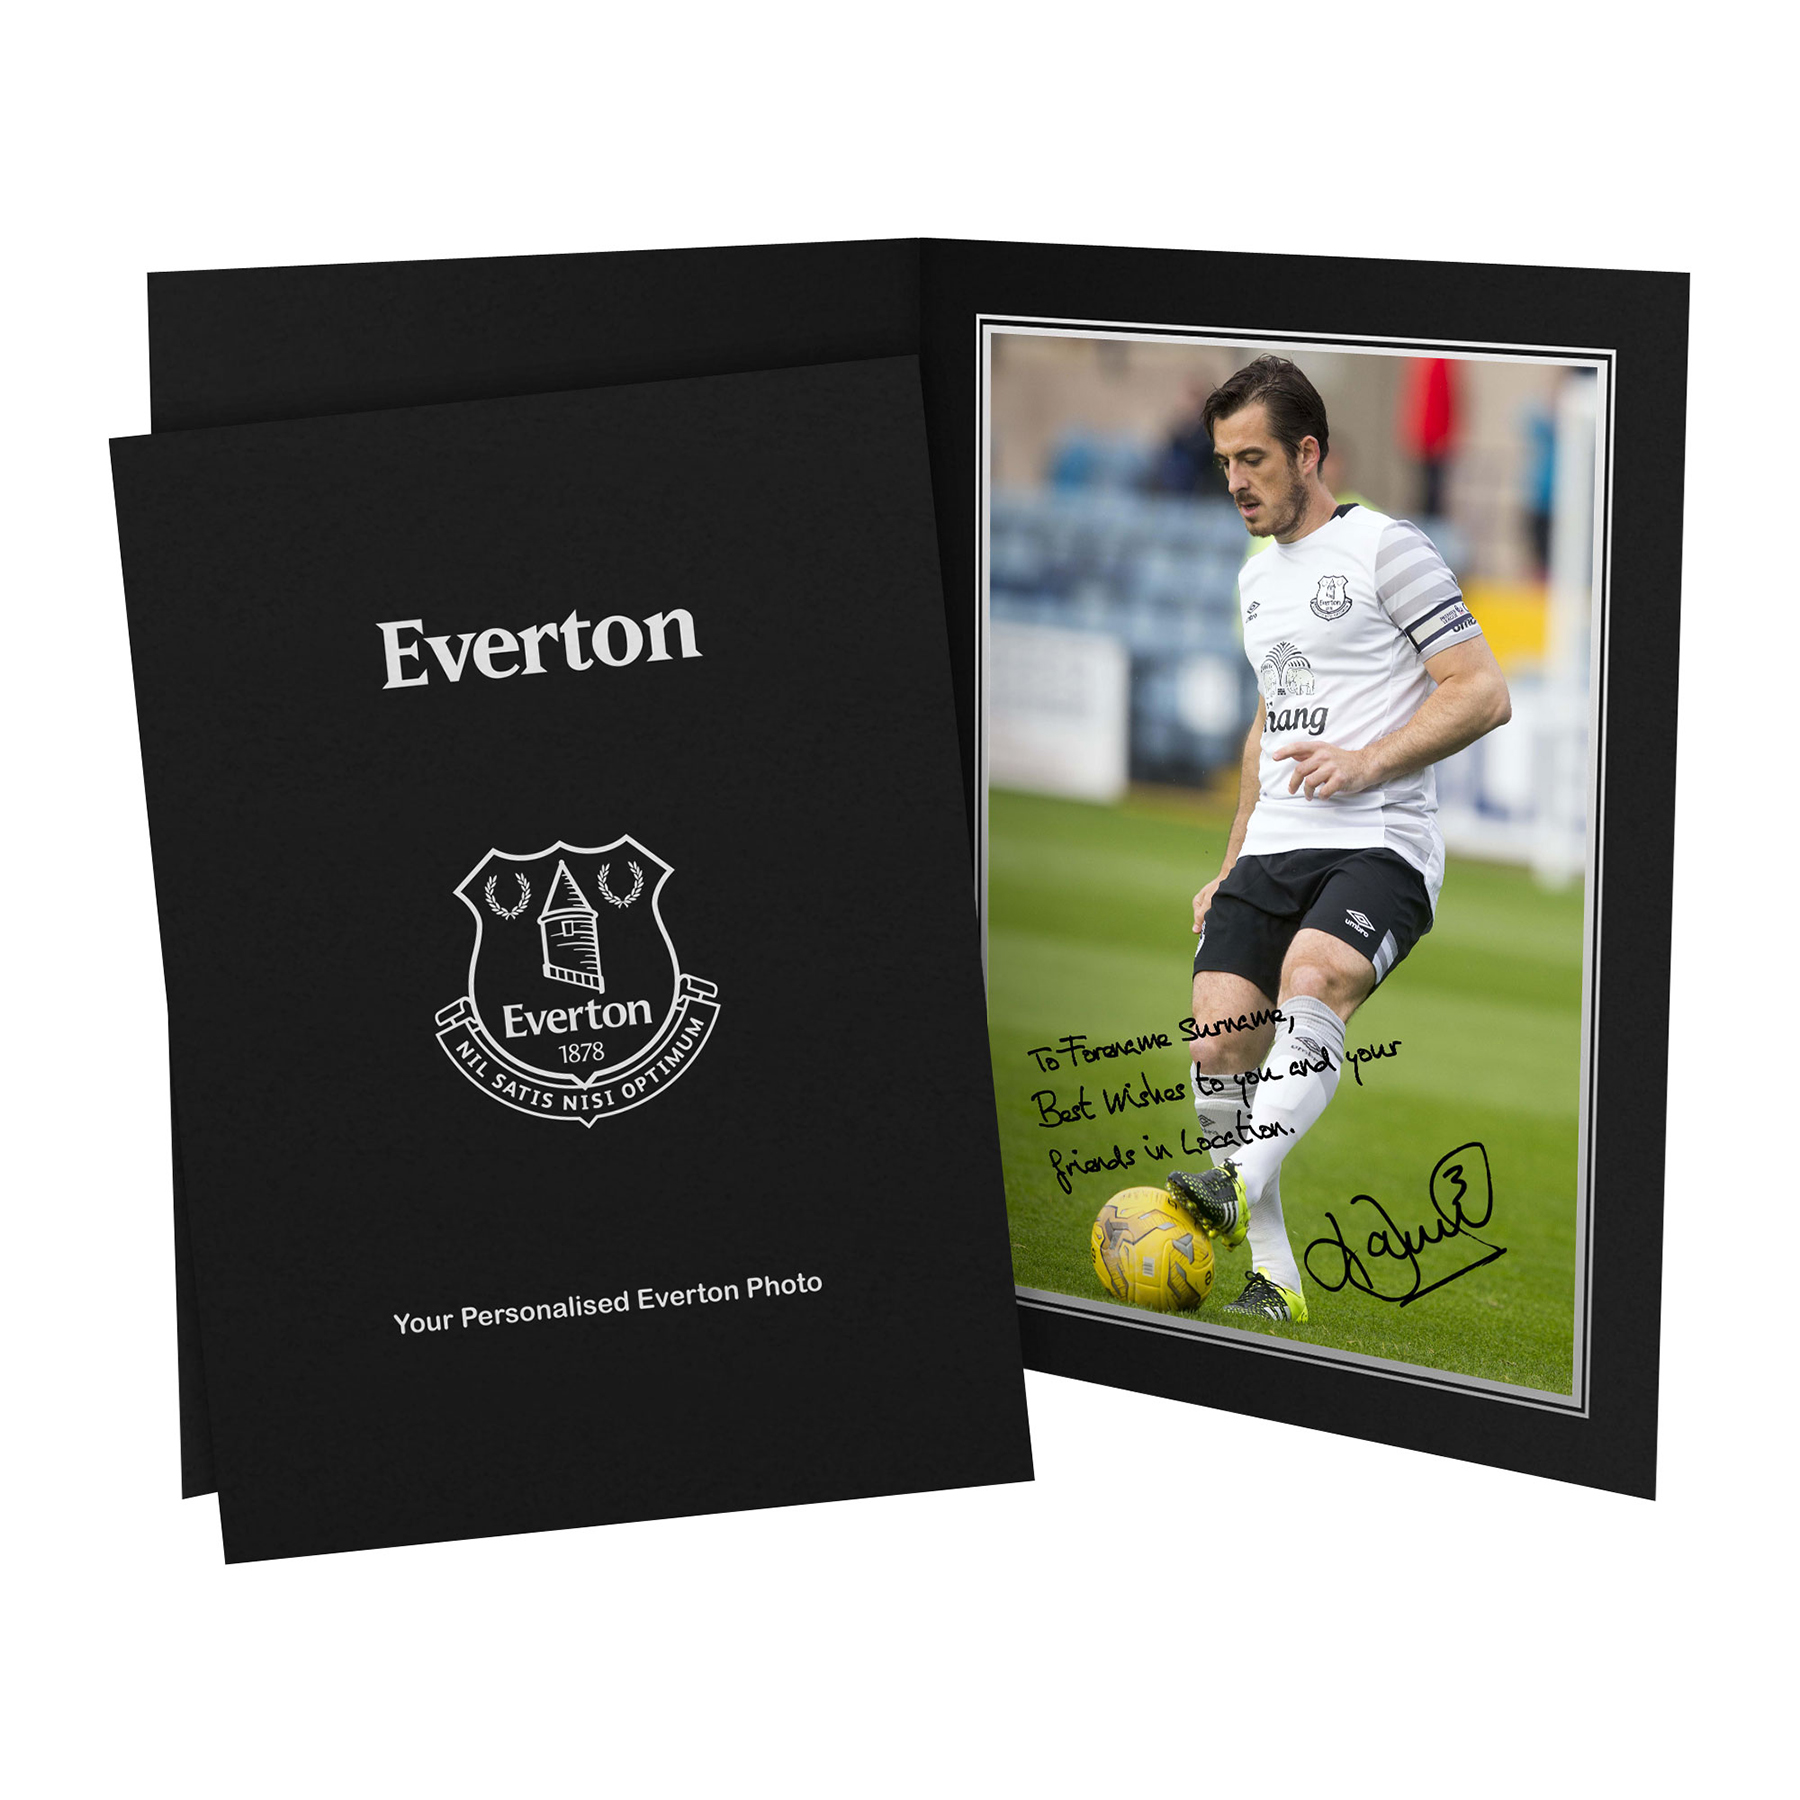 Everton Personalised Signature Photo in Presentation Folder - Baines